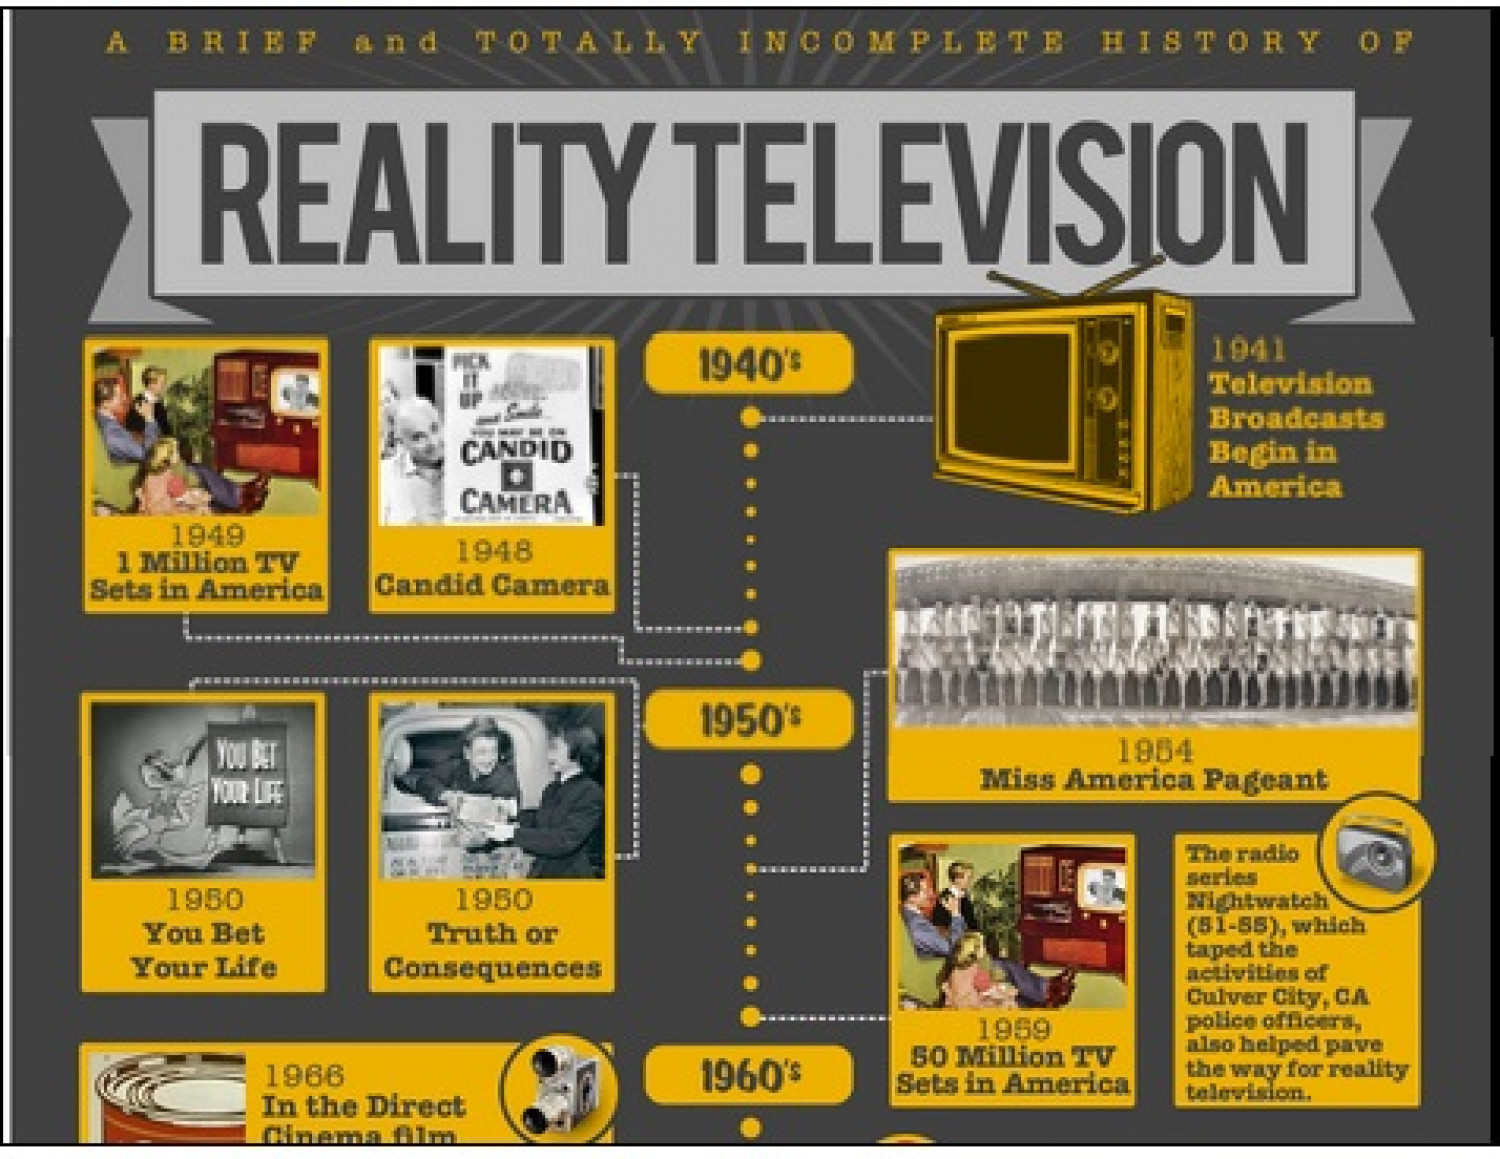 history of reality tv celebrities Television in the united states - the 21st century: the biggest spectacle in television history began on the morning of september 11, 2001 for days the networks and cable news channels suspended all regularly scheduled programming and showed nothing but round-the-clock images, interviews, and reporting about the terrorist attacks on new york.